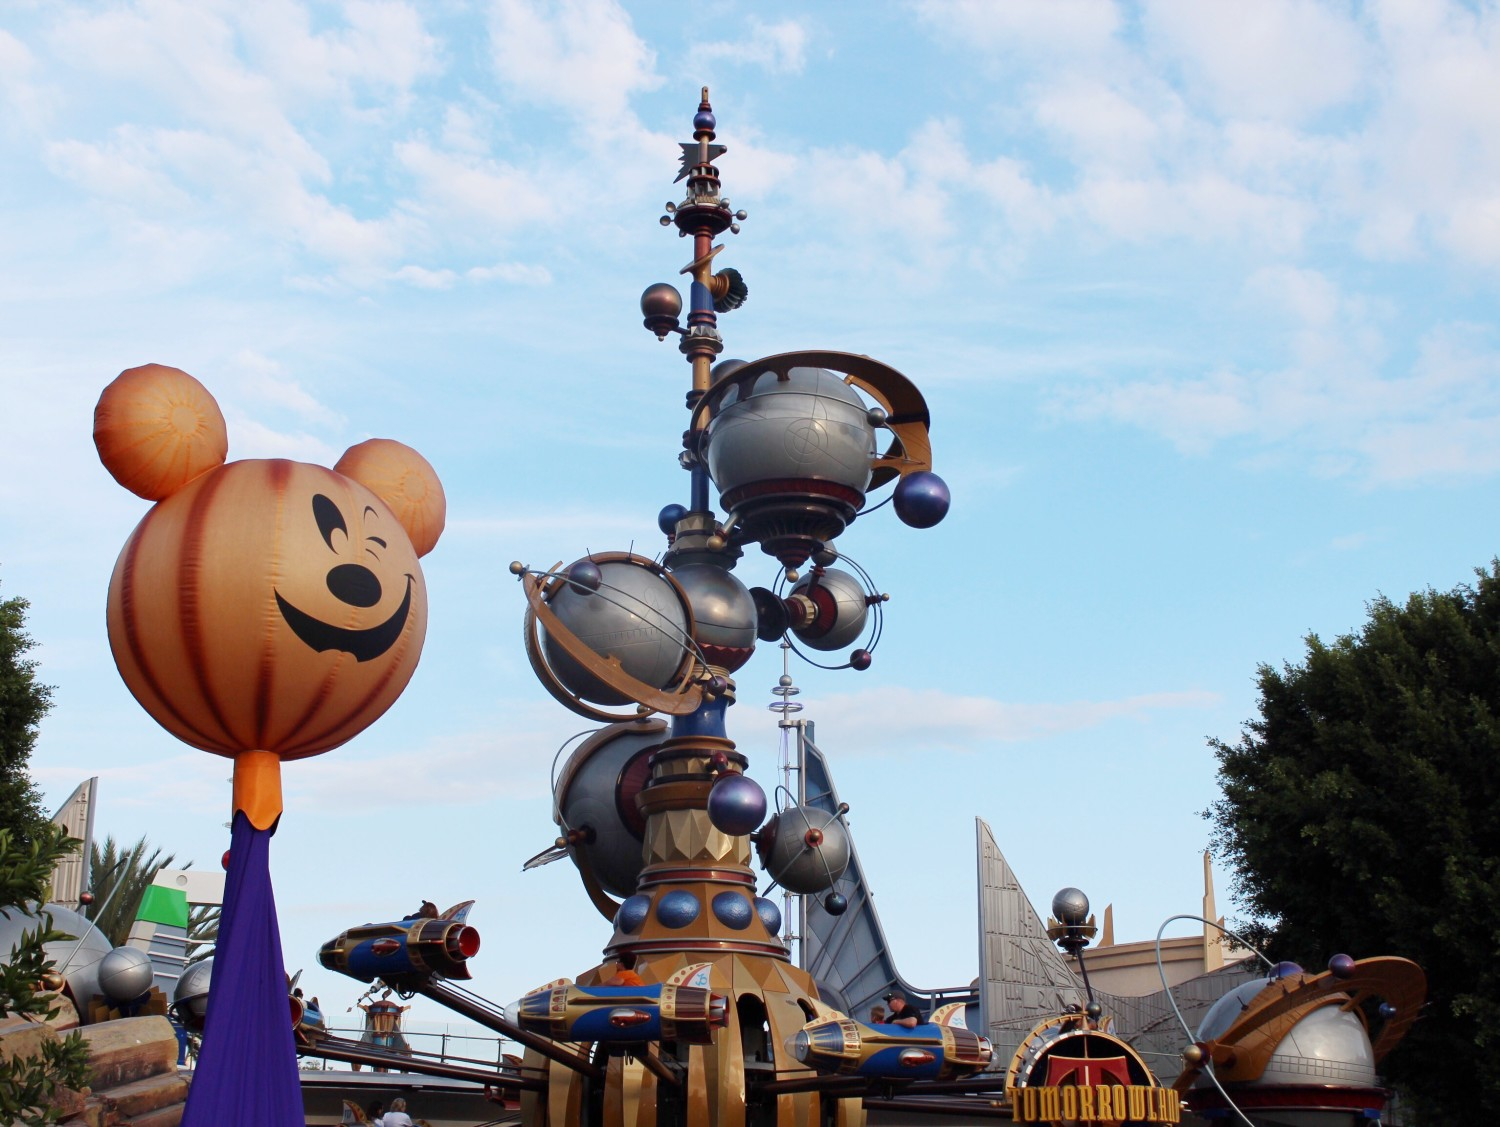 Disneyland Tomorrowland Halloween